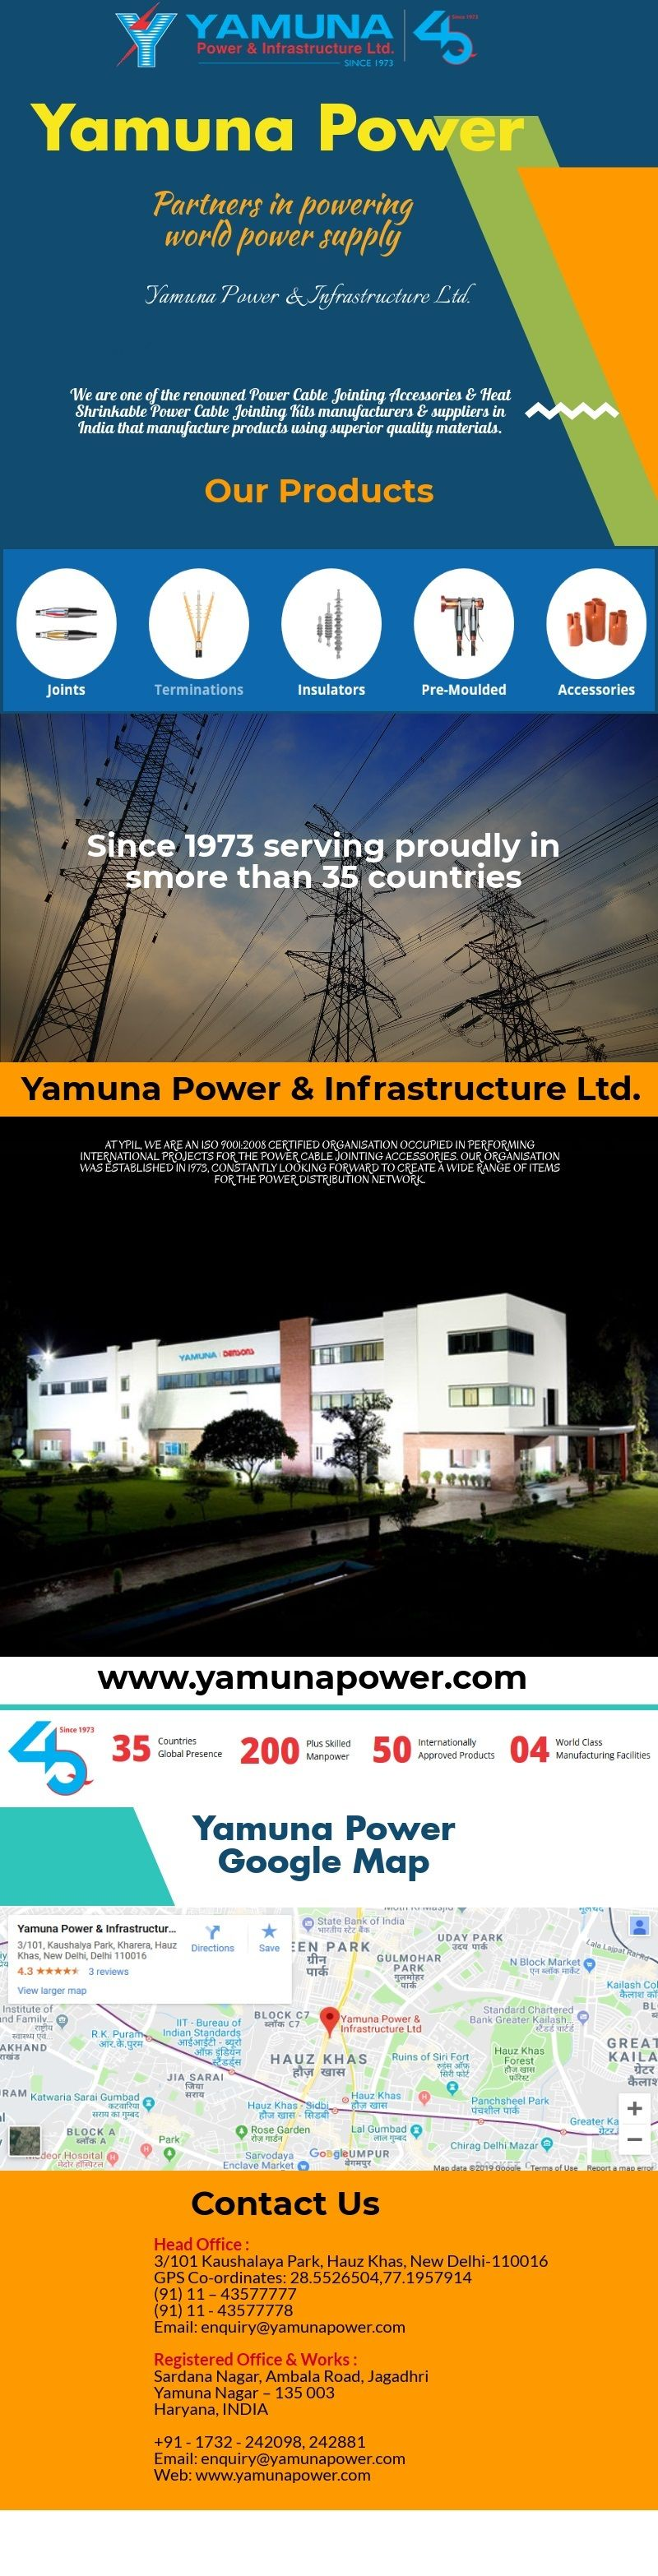 Yamuna Power is one of the leading power cable jointing